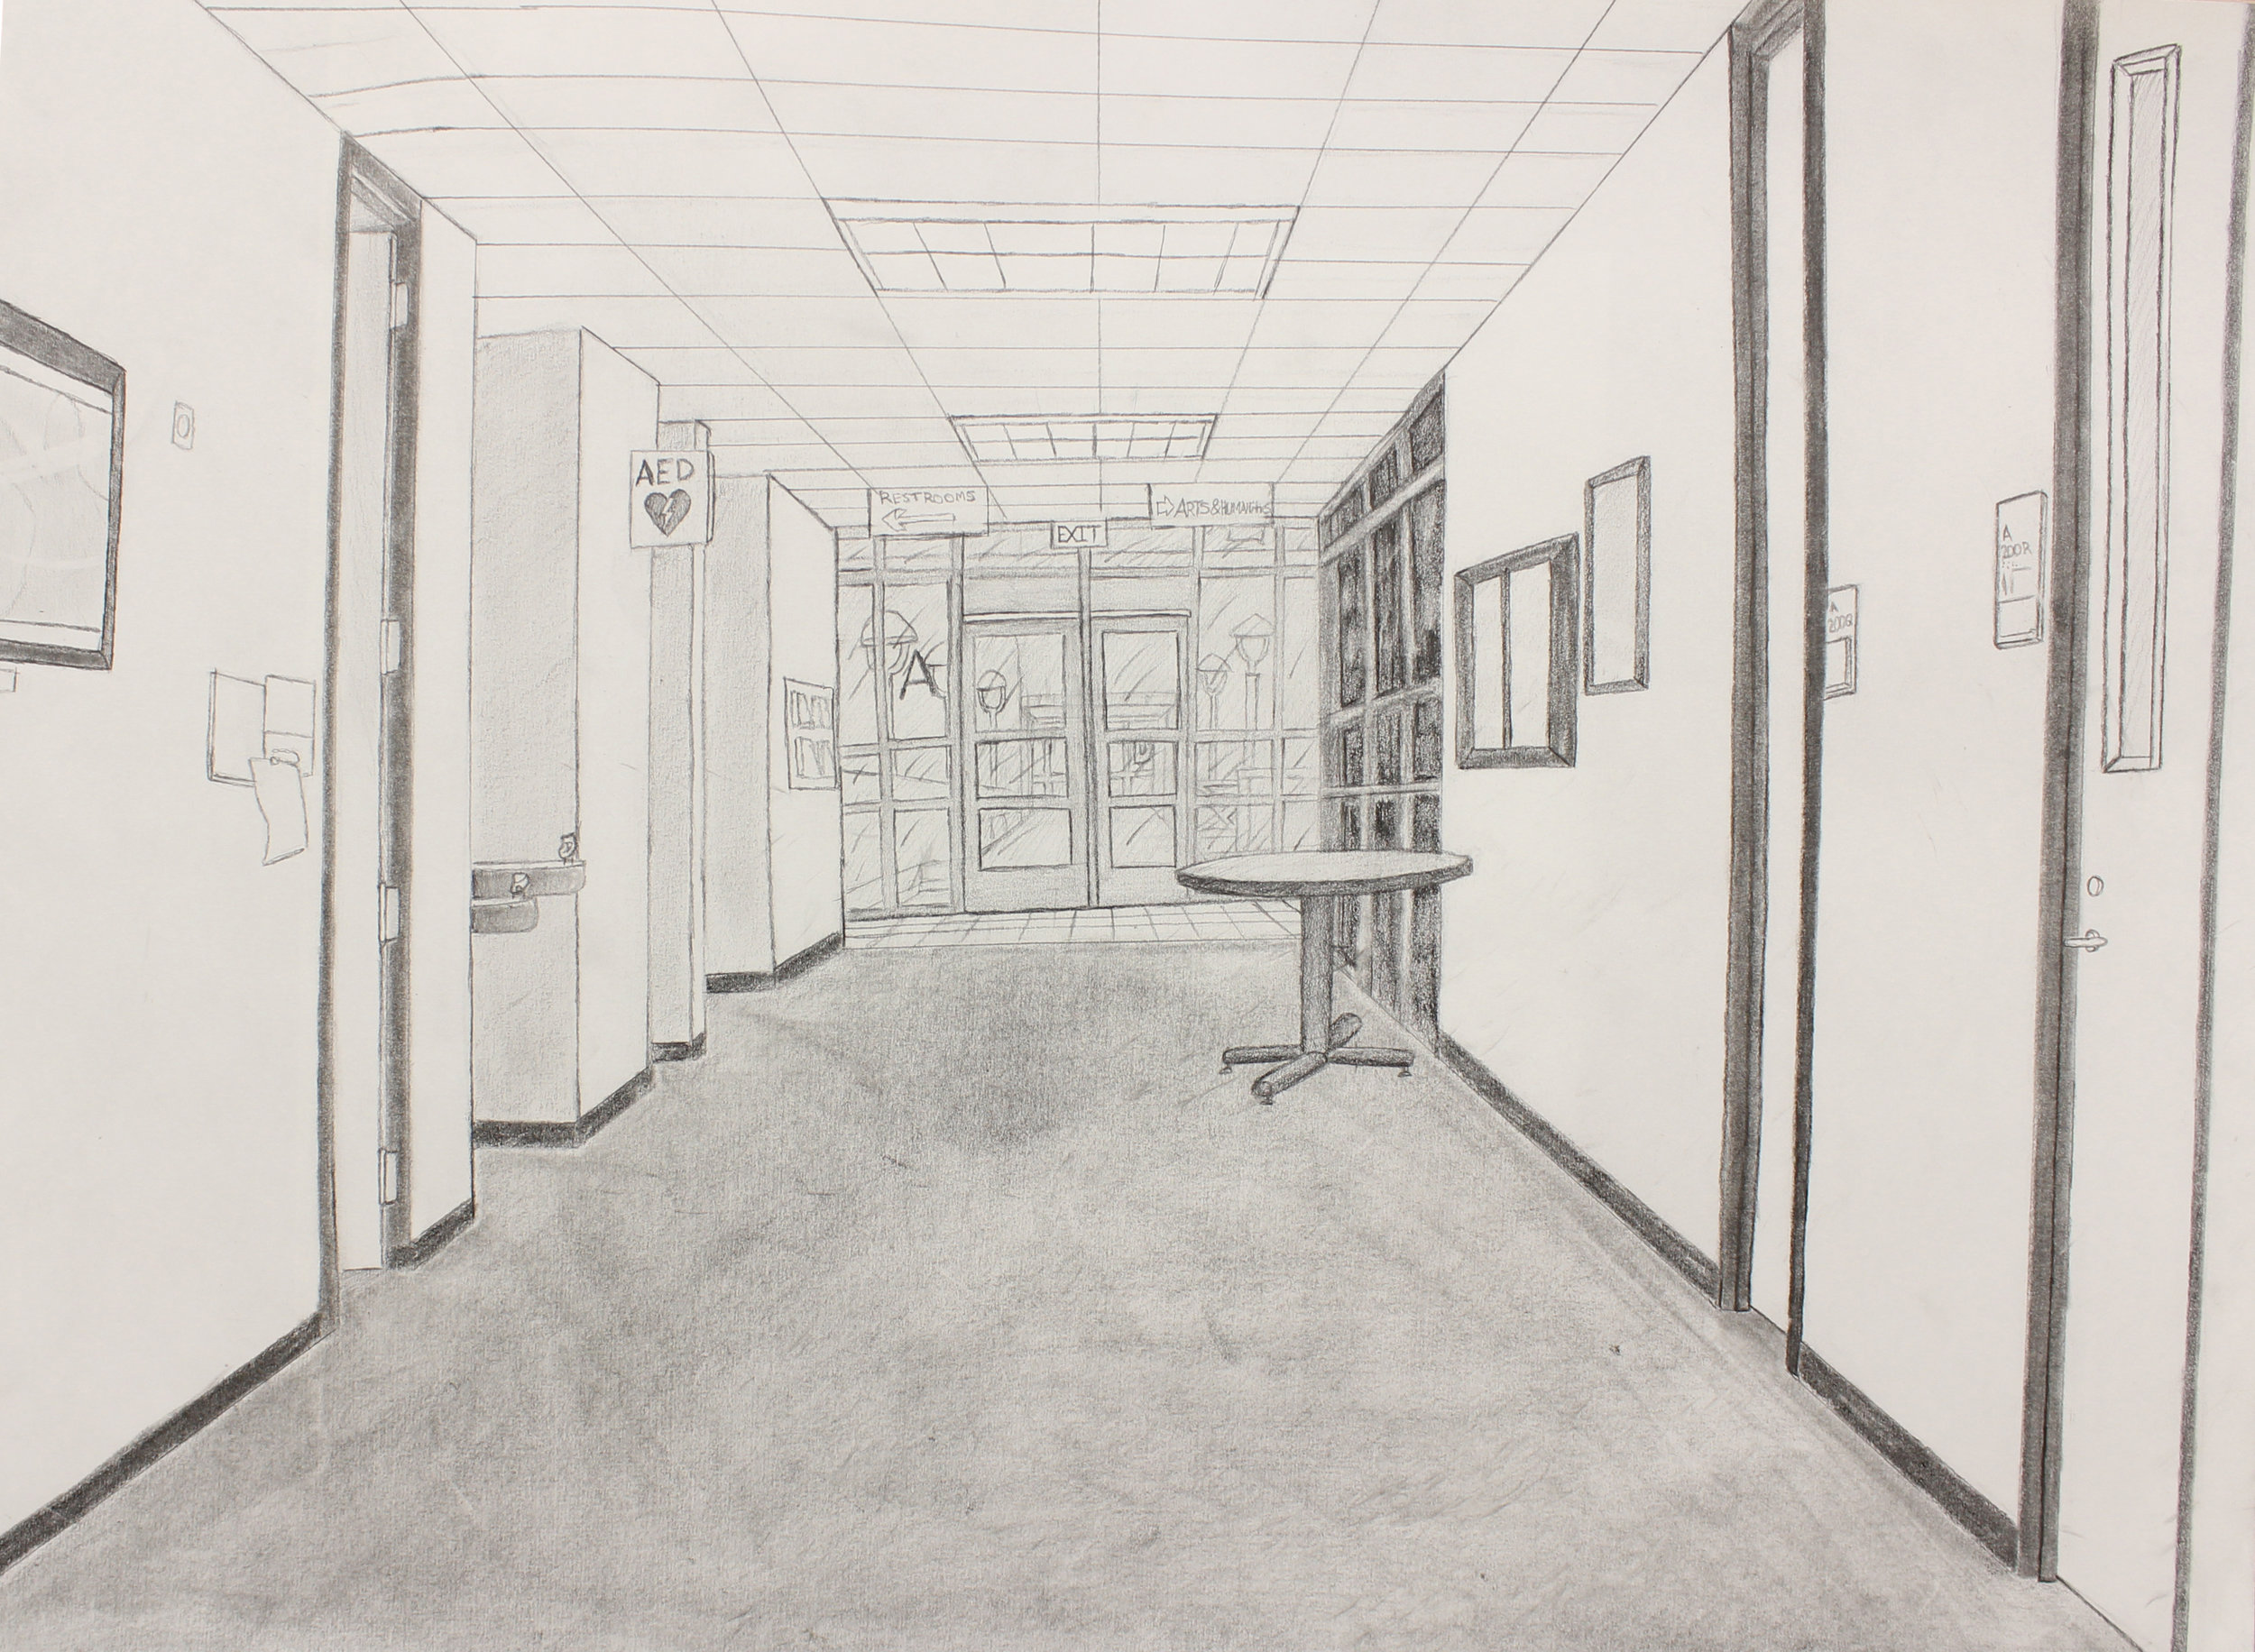 Drawing 1 - Perspective